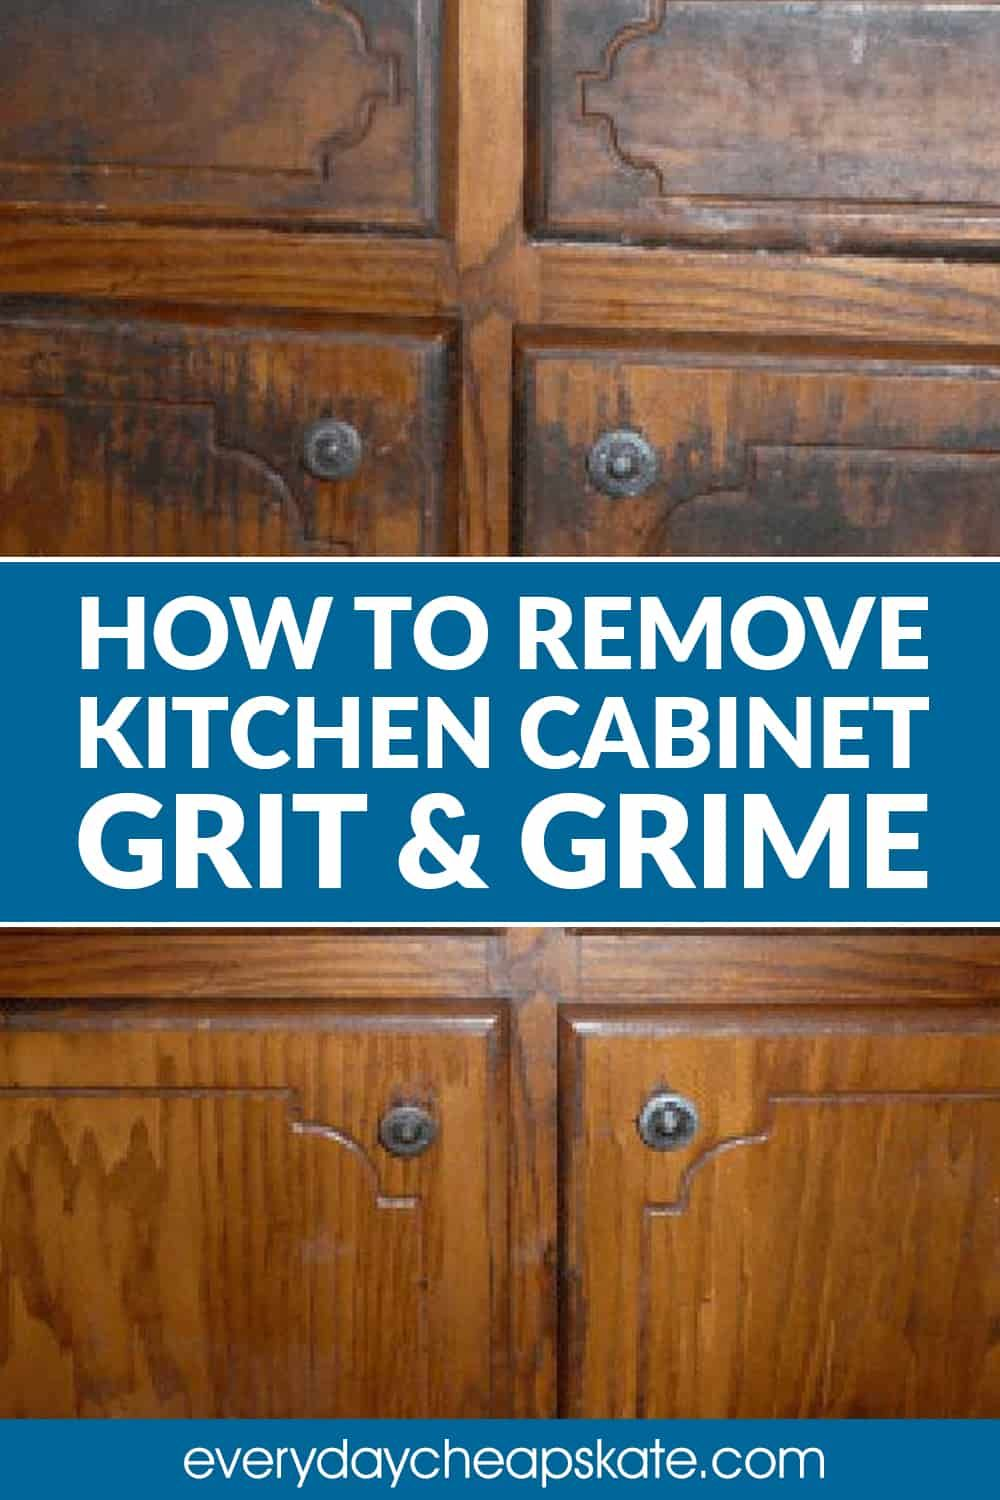 When Did You Last Look At Your Kitchen Cabinets Not A Passing Glance But An Up Close In 2020 Cleaning Cabinets How To Remove Kitchen Cabinets Cleaning Wood Cabinets